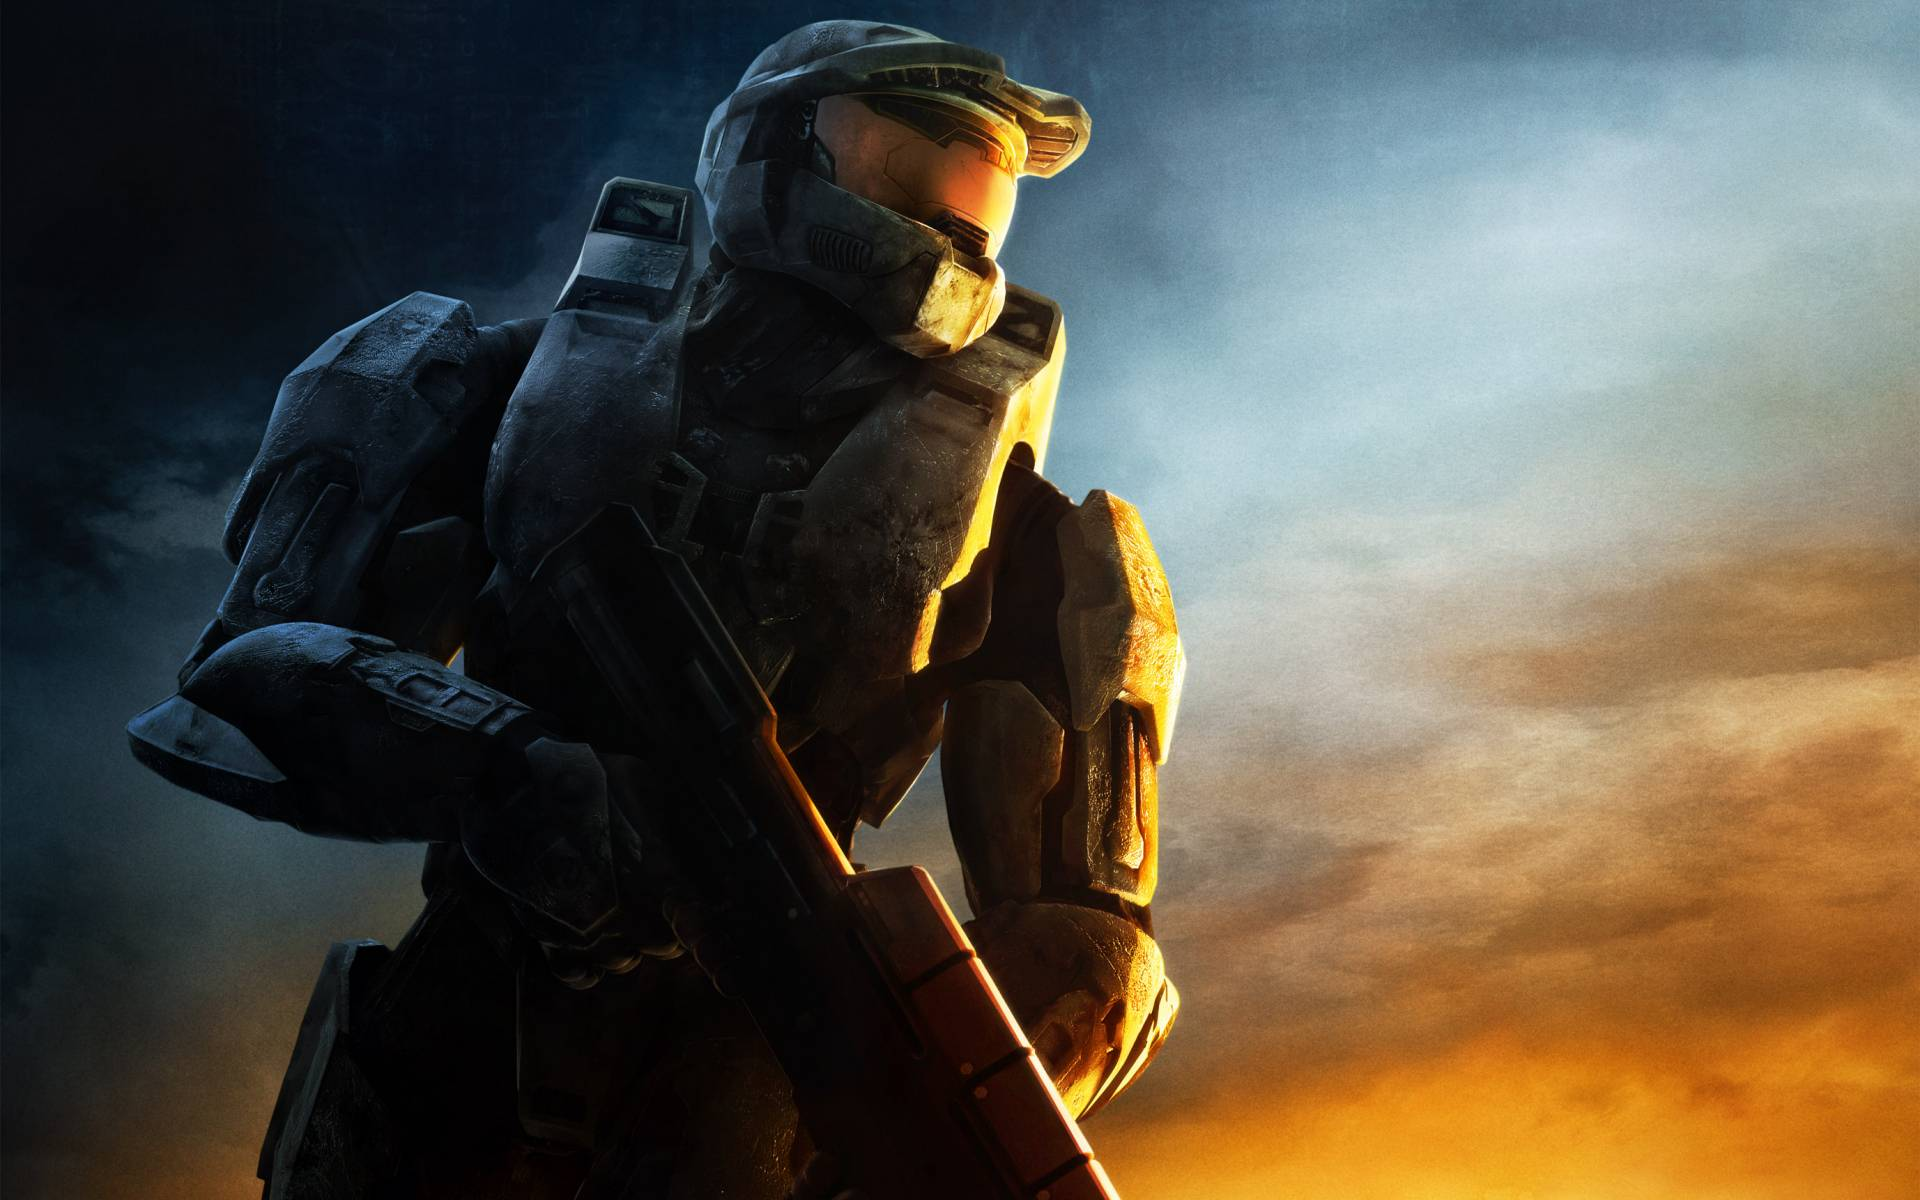 Wallpapers Halo Hq Image 12 HD Wallpapers